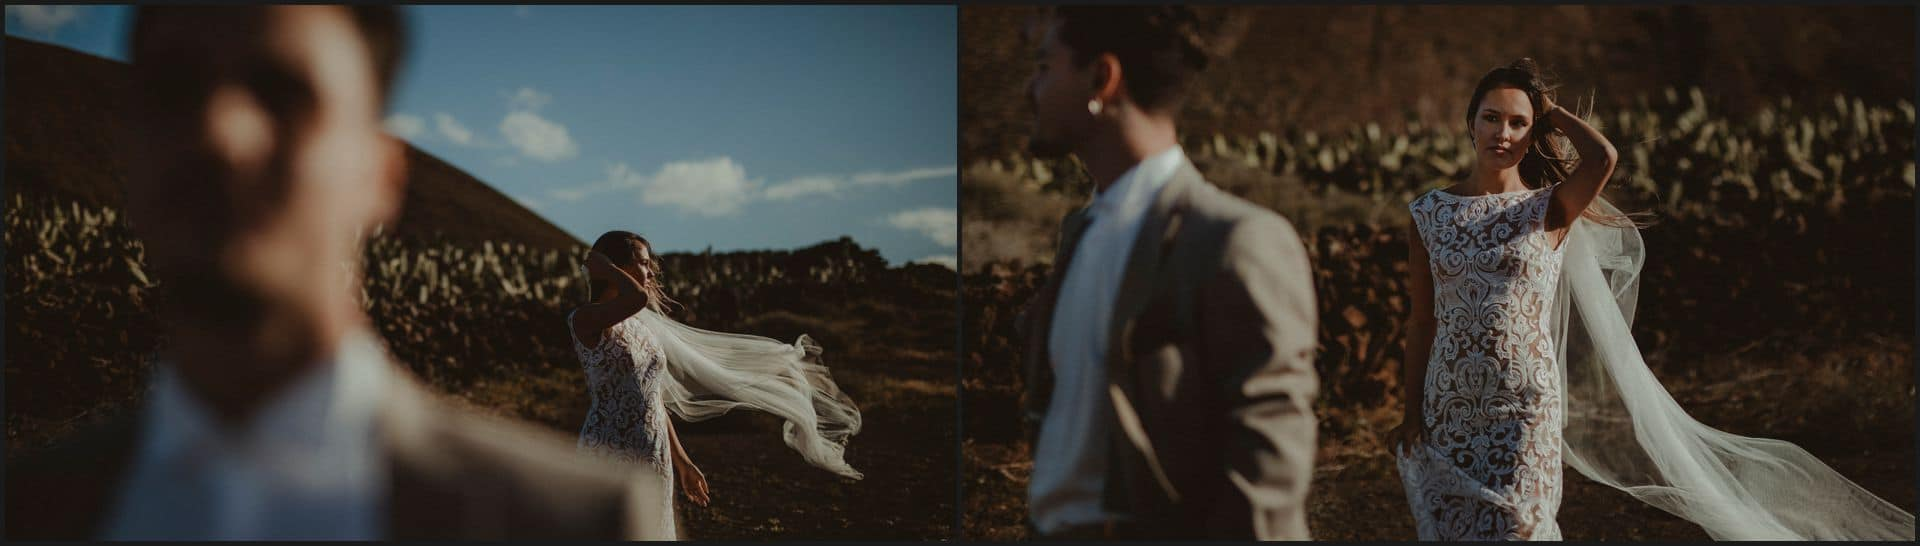 lanzarote, wedding, first look, bride, groom, emotions